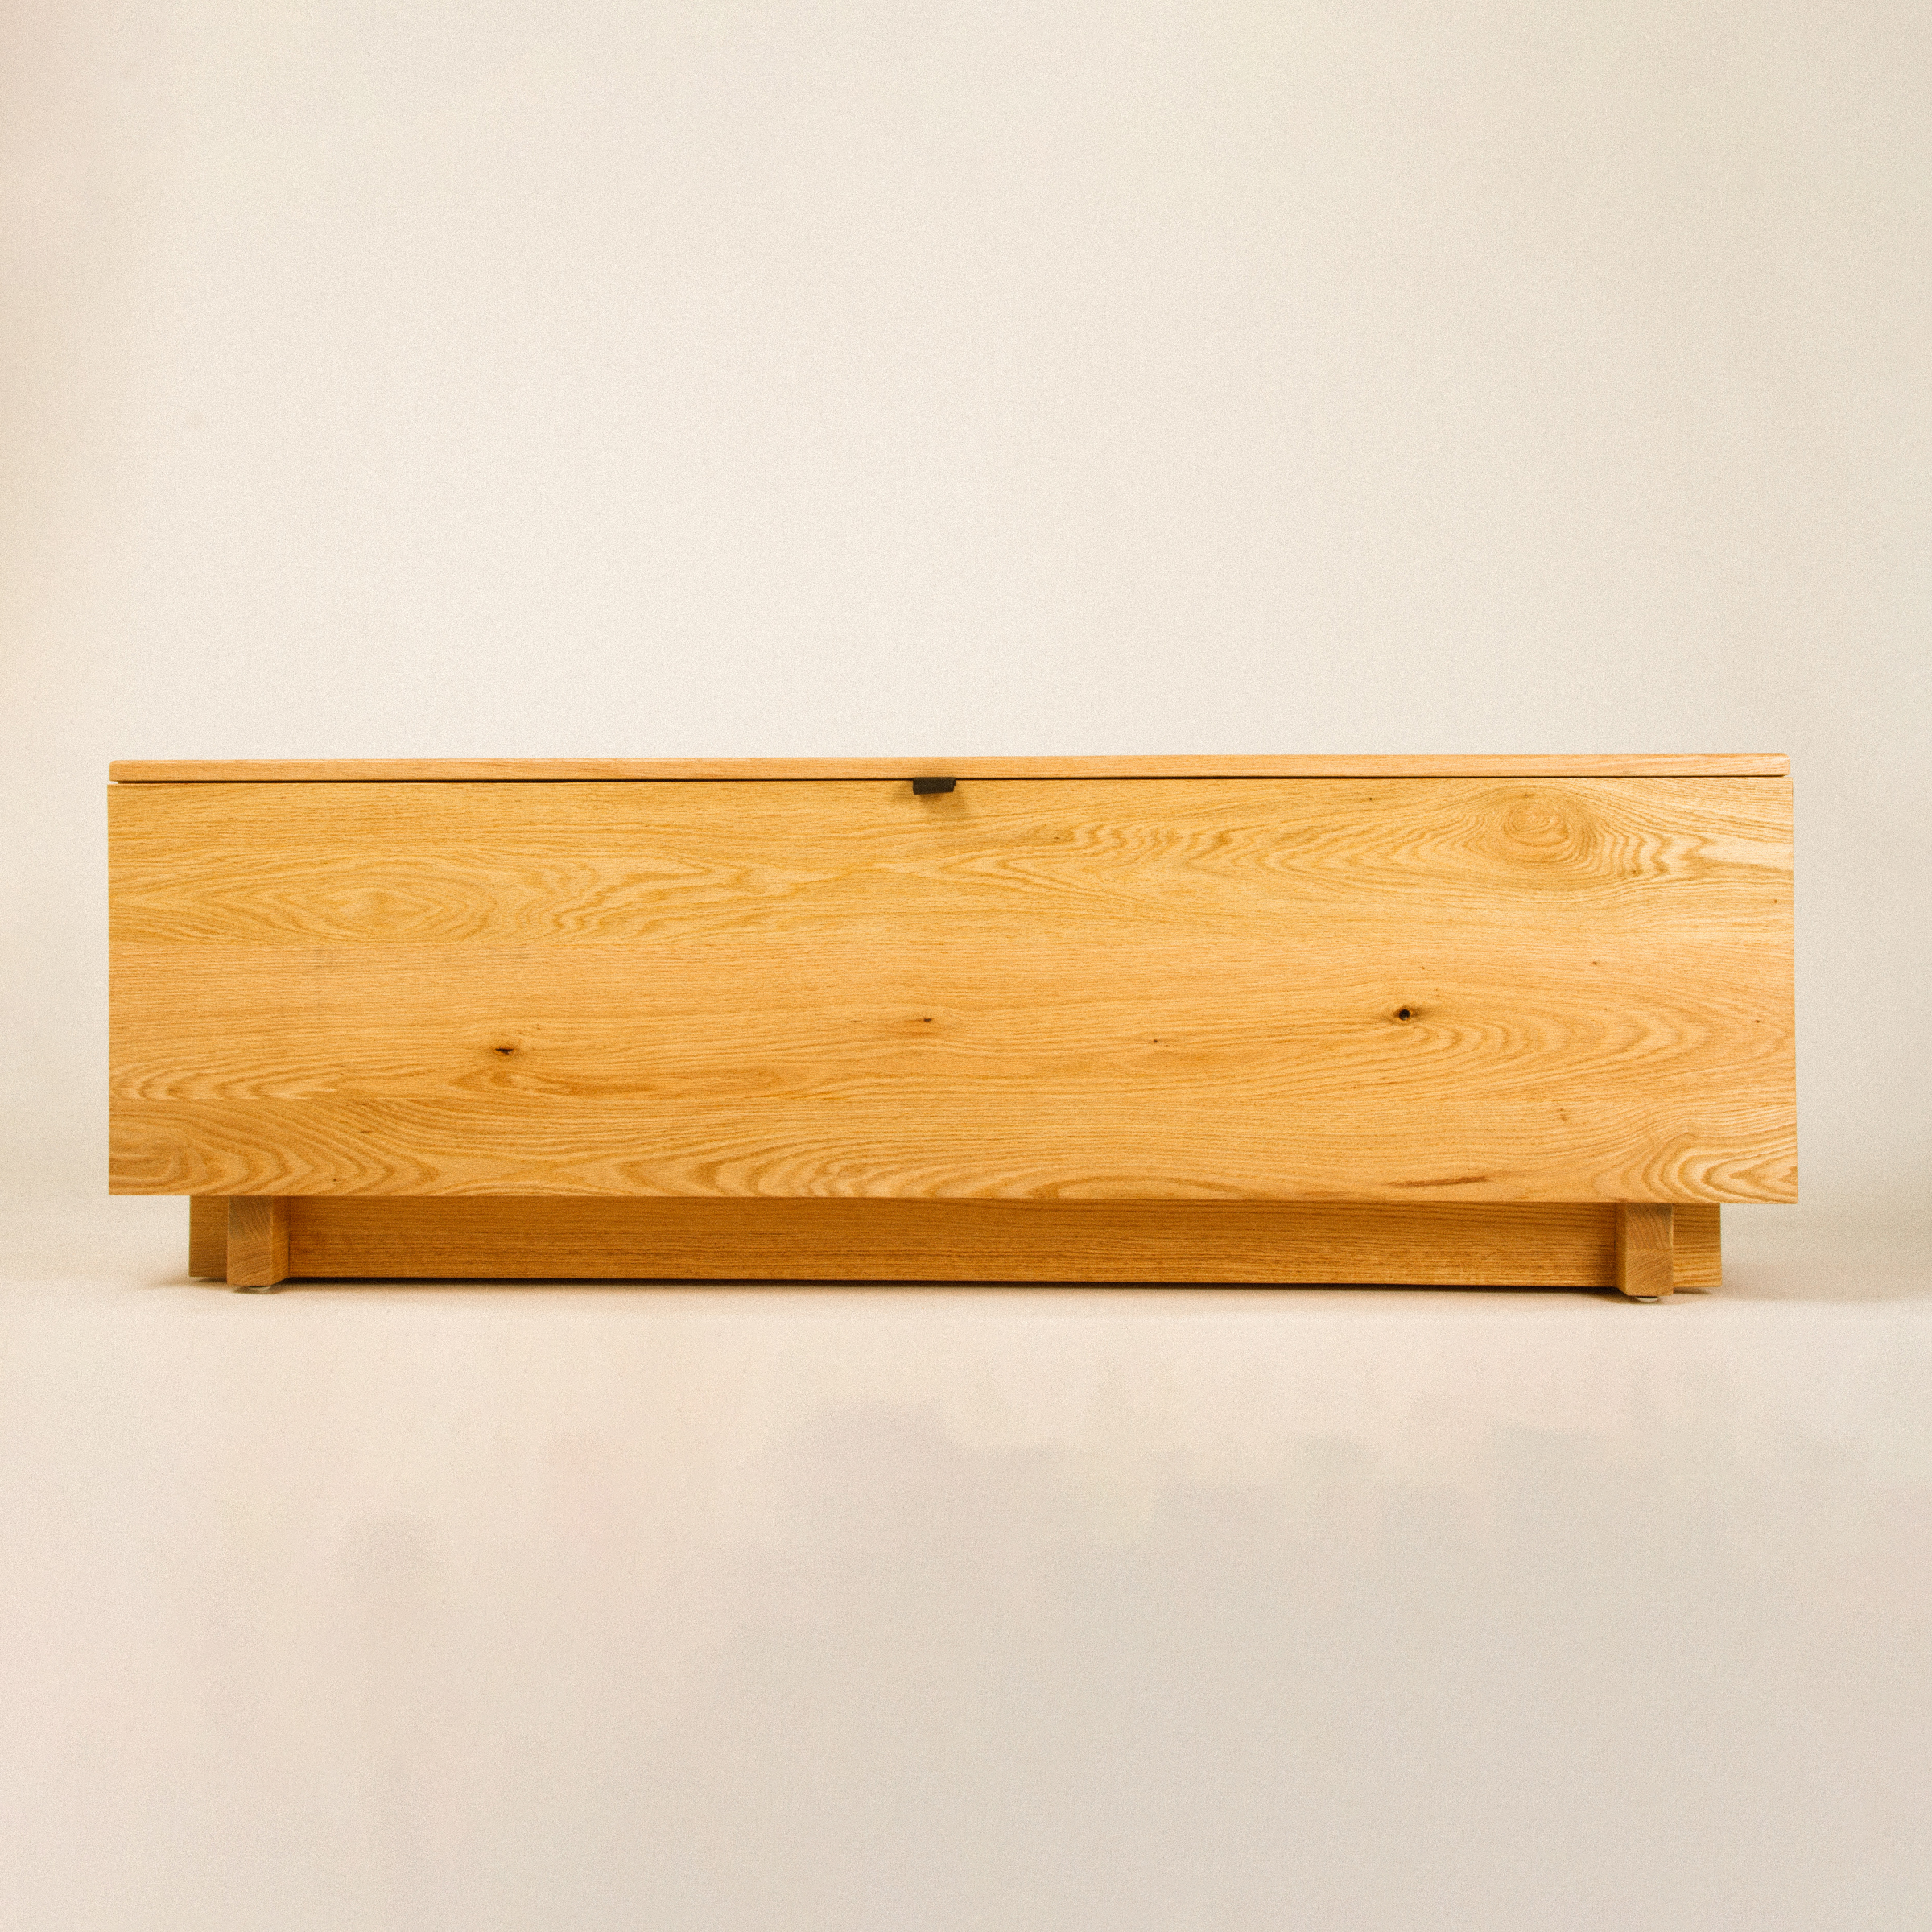 - BUYING A PIECE OF FURNITURE FROM MAYSON IS AN INVESTMENT IN SUSTAINABILITY AND THOUGHTFUL CRAFTSMANSHIP. NATURAL, MINIMAL, AND FUNCTIONAL, OUR FURNITURE IS DESIGNED TO COMPLEMENT YOUR LIFESTYLE WITH THE LOWEST ENVIRONMENTAL IMPACT POSSIBLE. PLUS, YOU CAN REST EASY KNOWING THAT THIS FURNITURE IS GOING TO LAST YOU A LIFETIME.